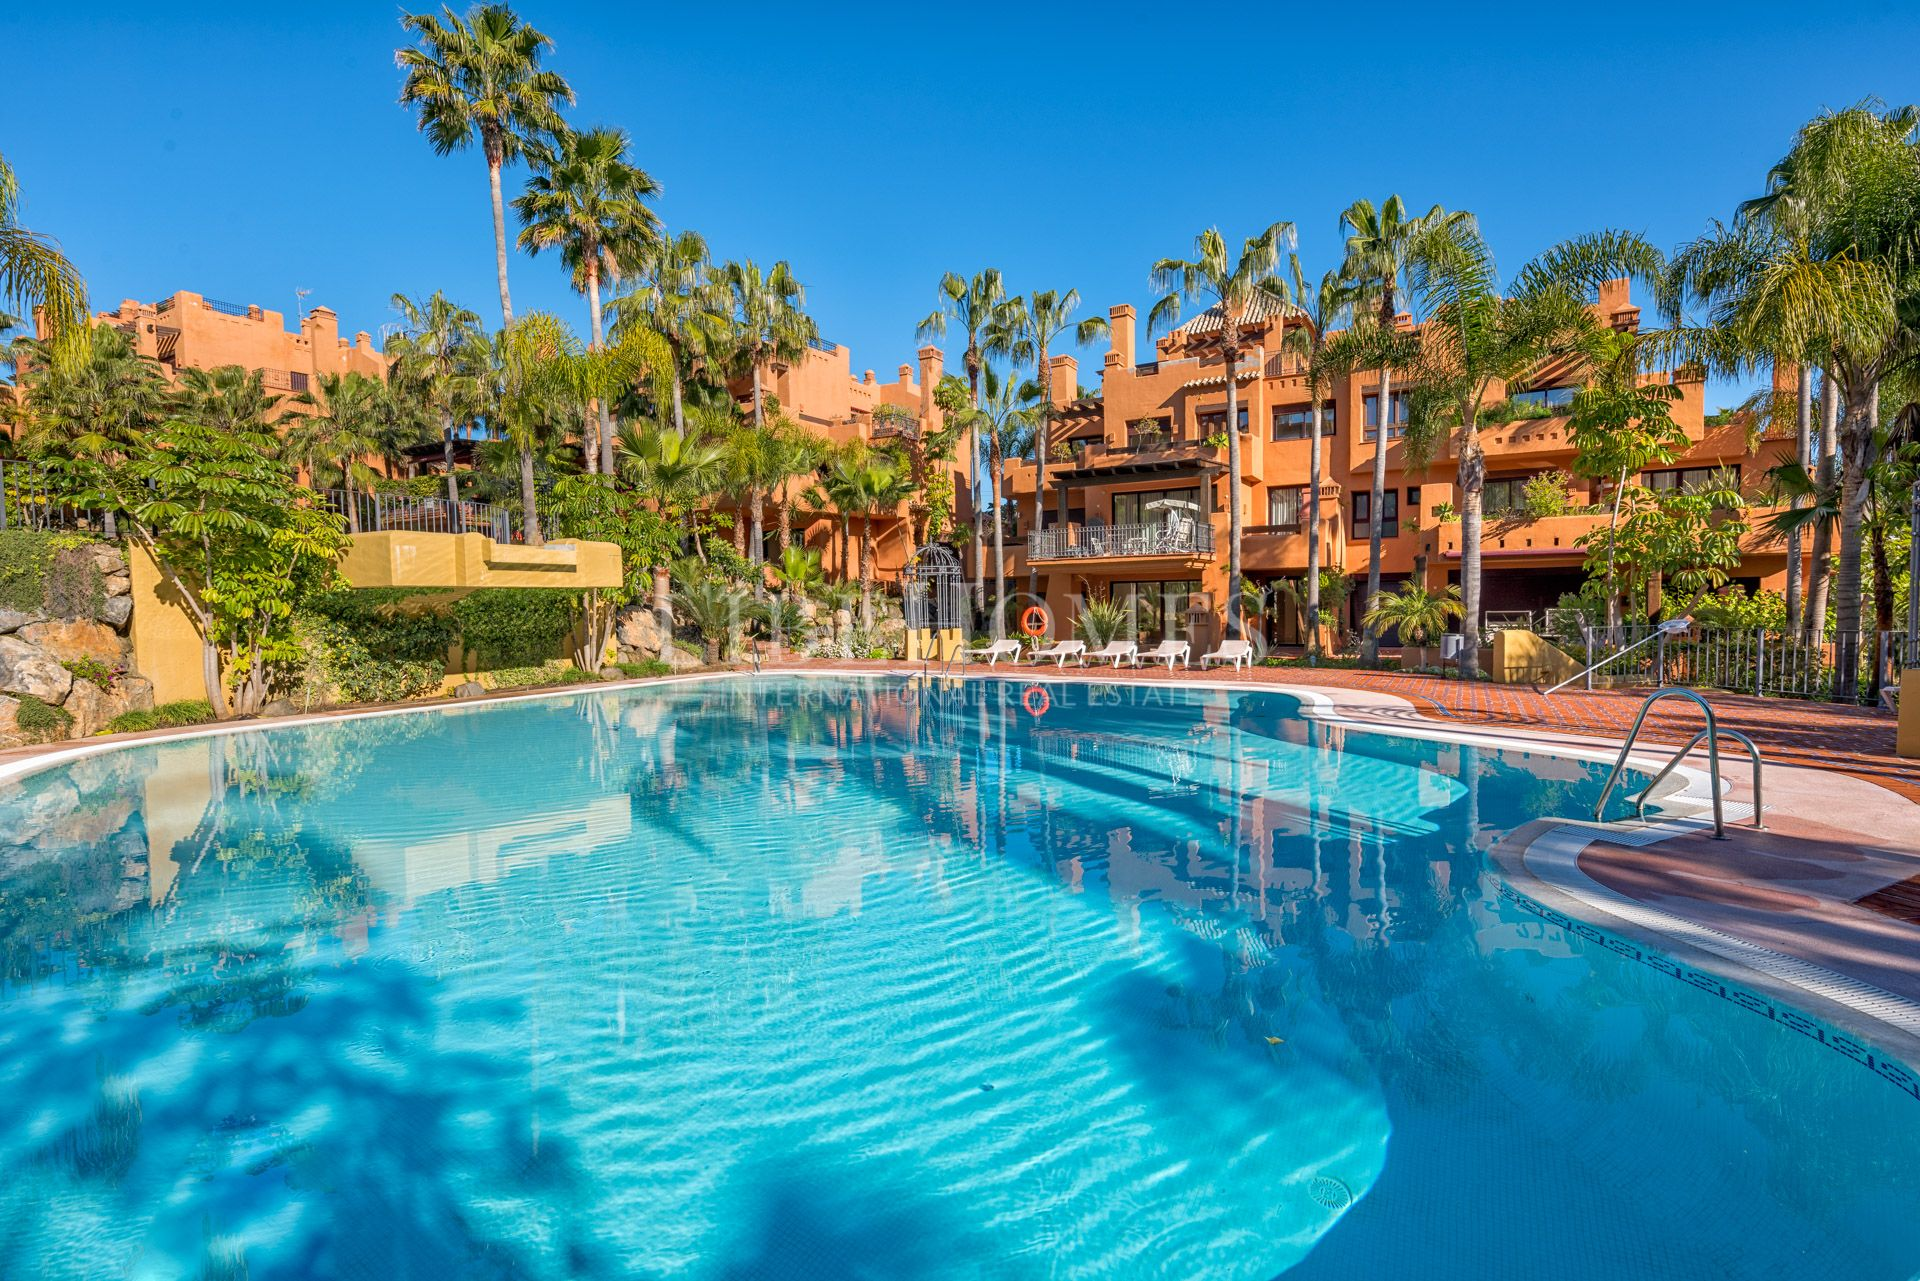 Apartment for sale in Marbella Nueva Andalucia